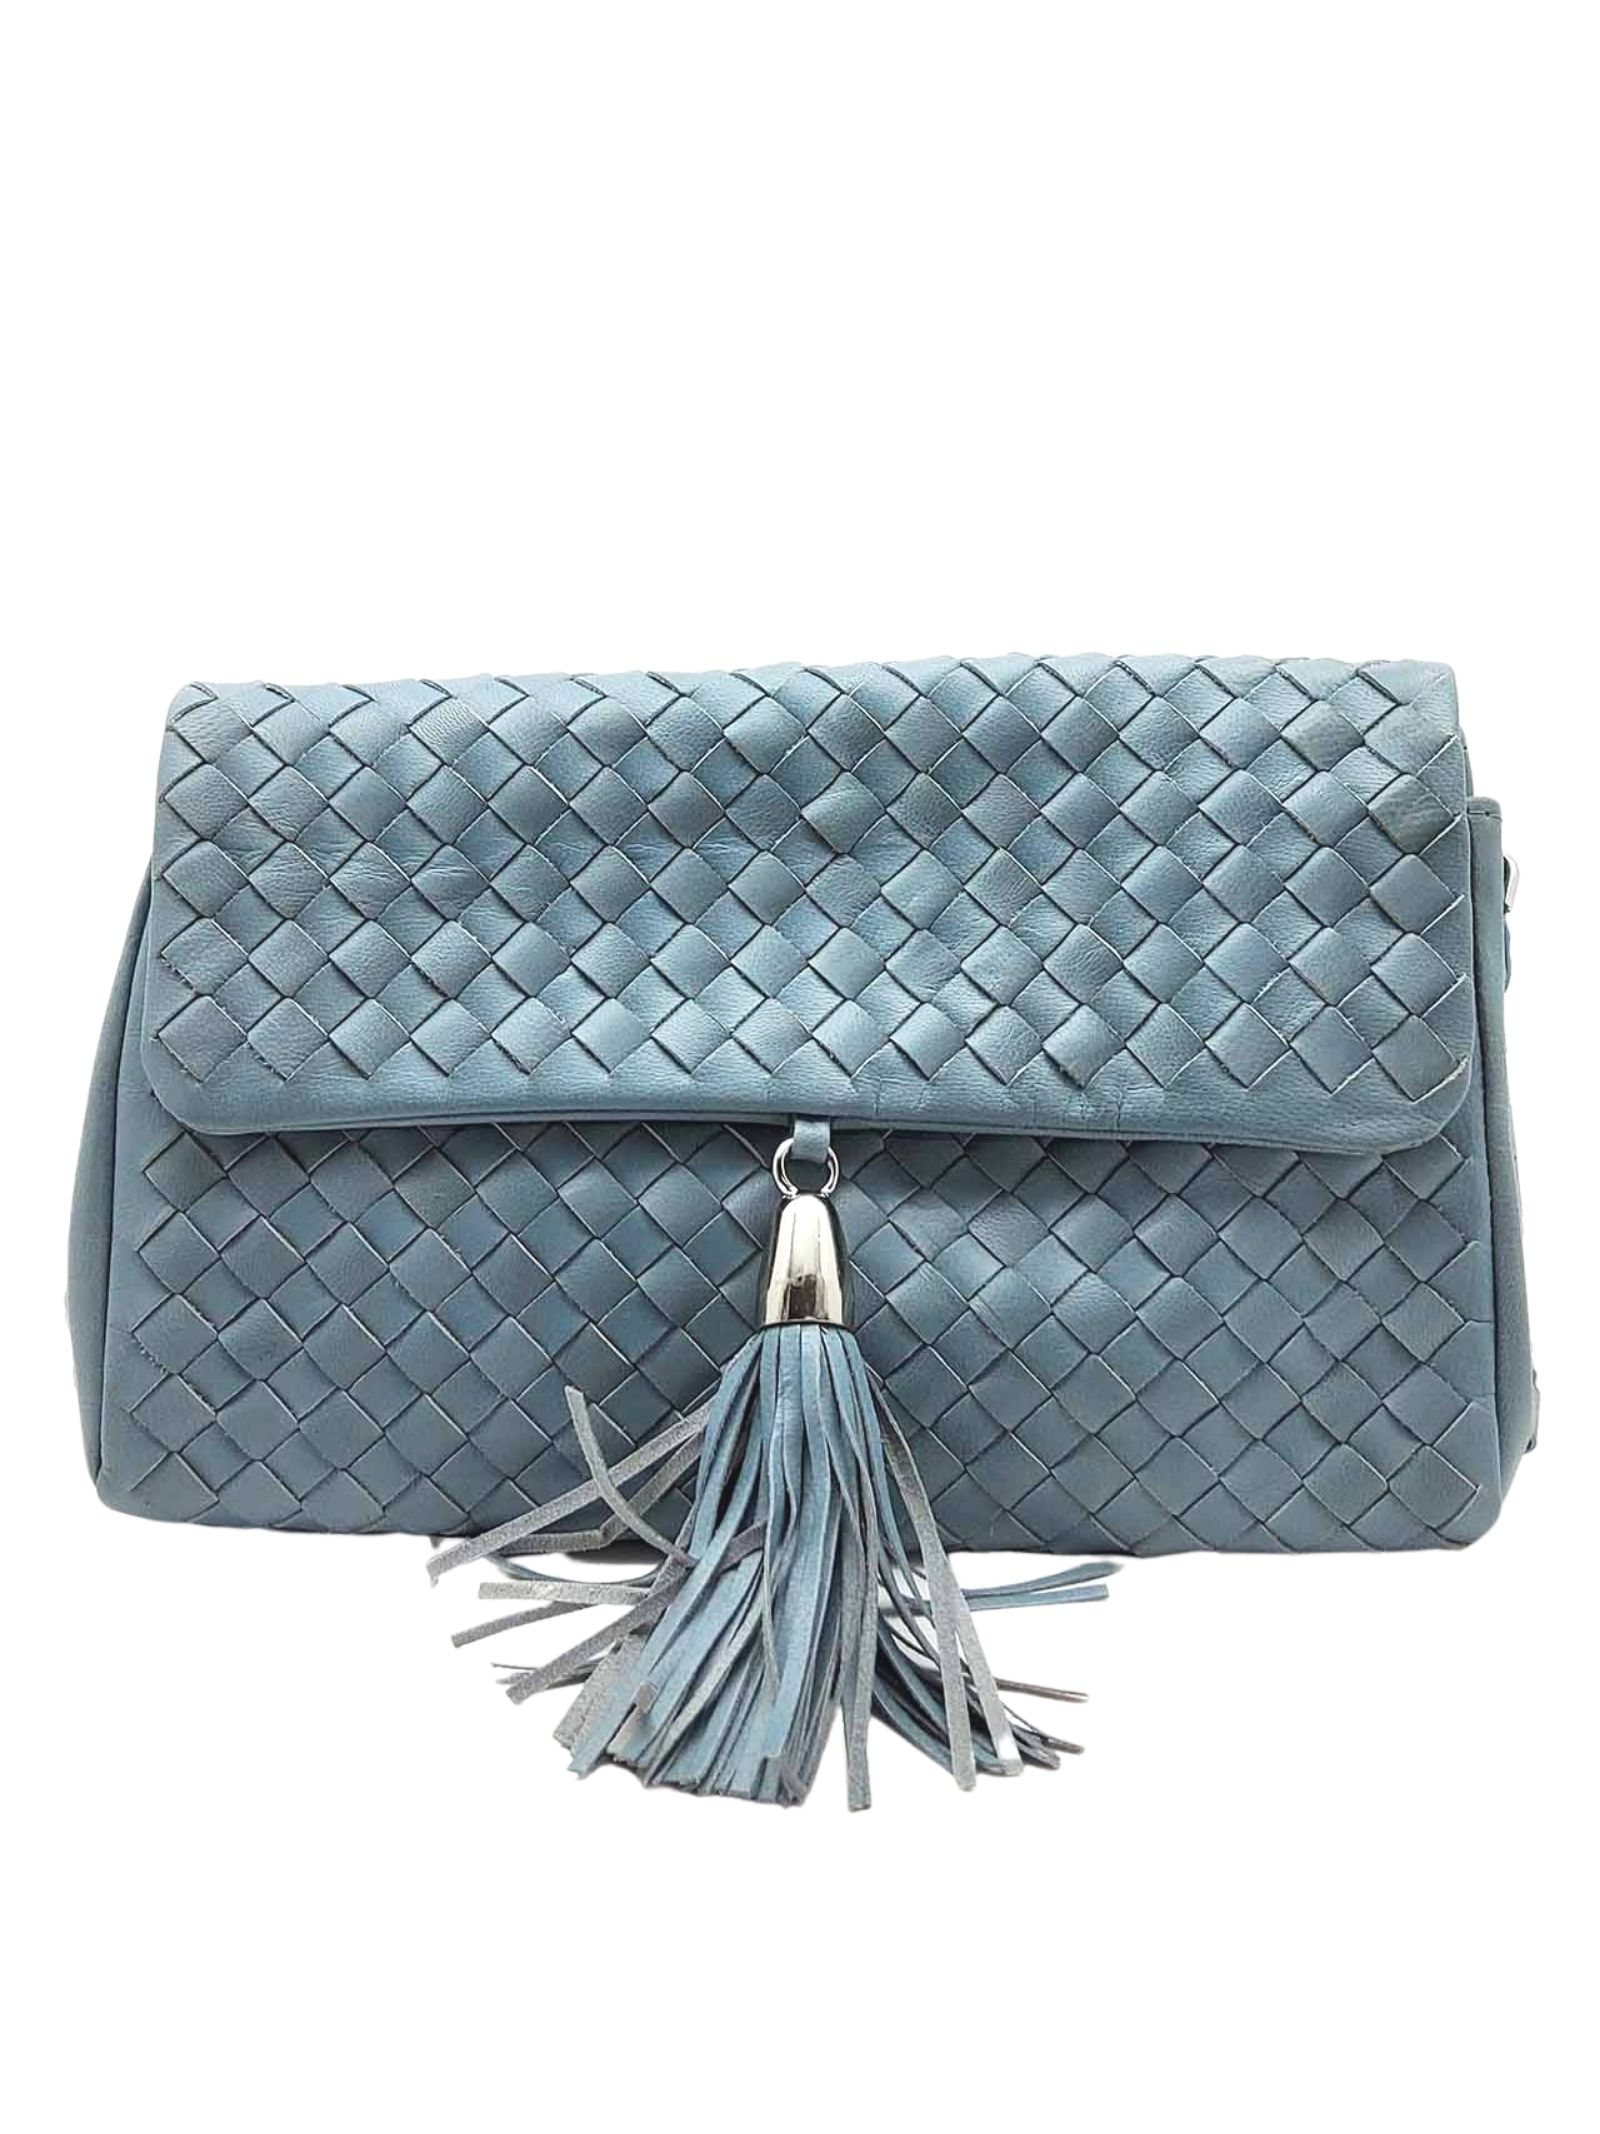 Woman Shoulder Bag in Sky Braided Leather with Pendant and Silver Metallic Chain Pons Quintana   Bags and backpacks   V050400